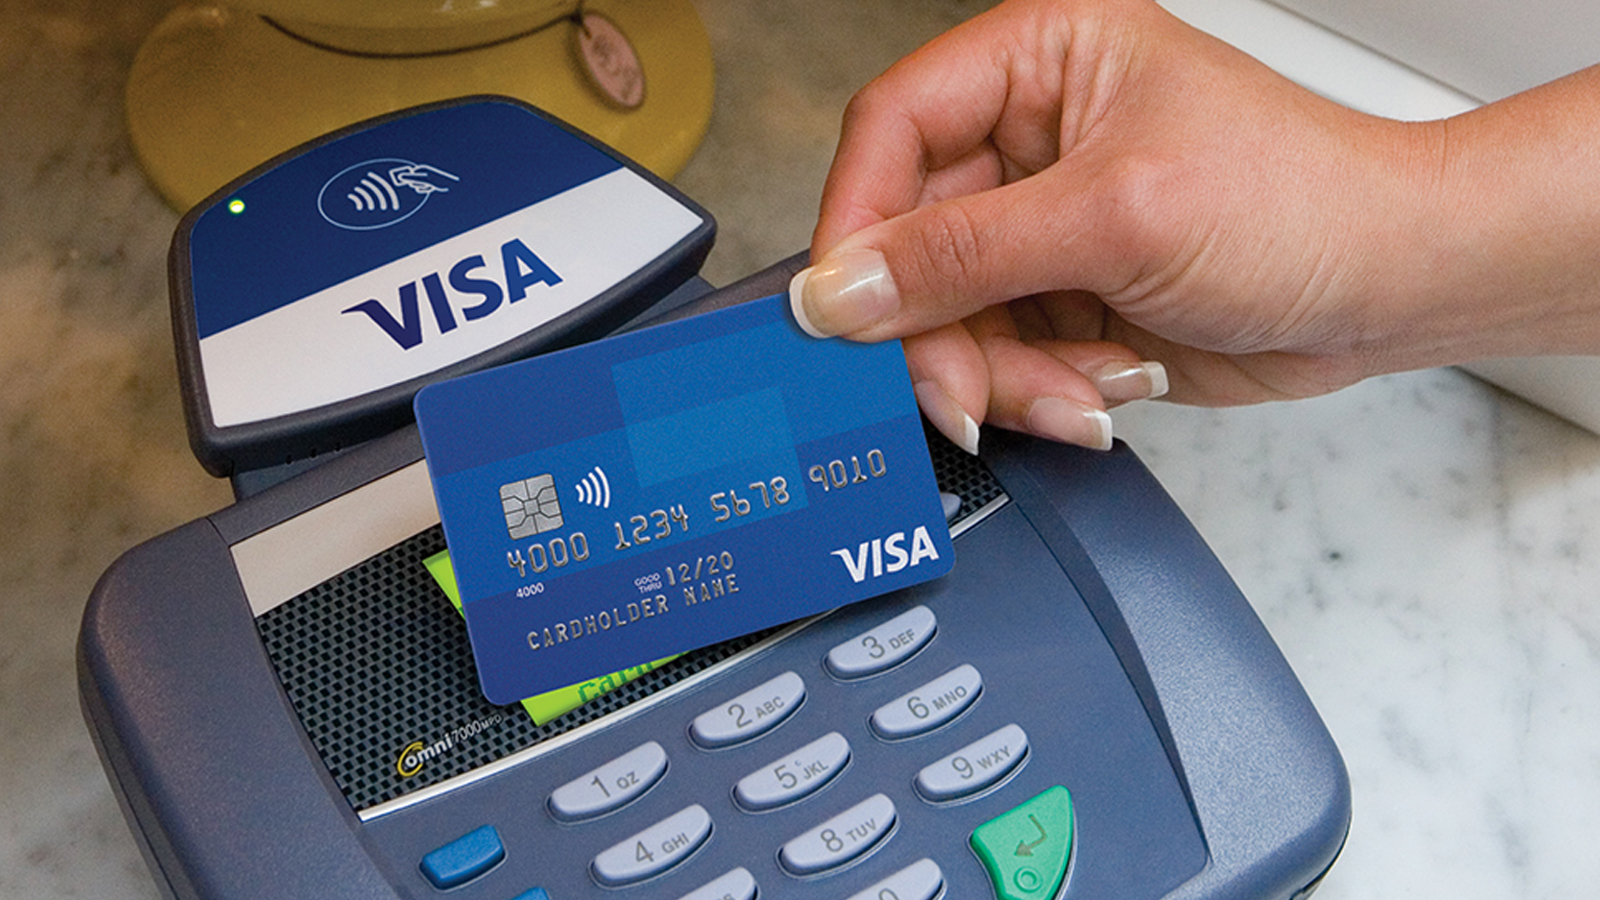 A hand holding a Visa card over a contactless POS system.